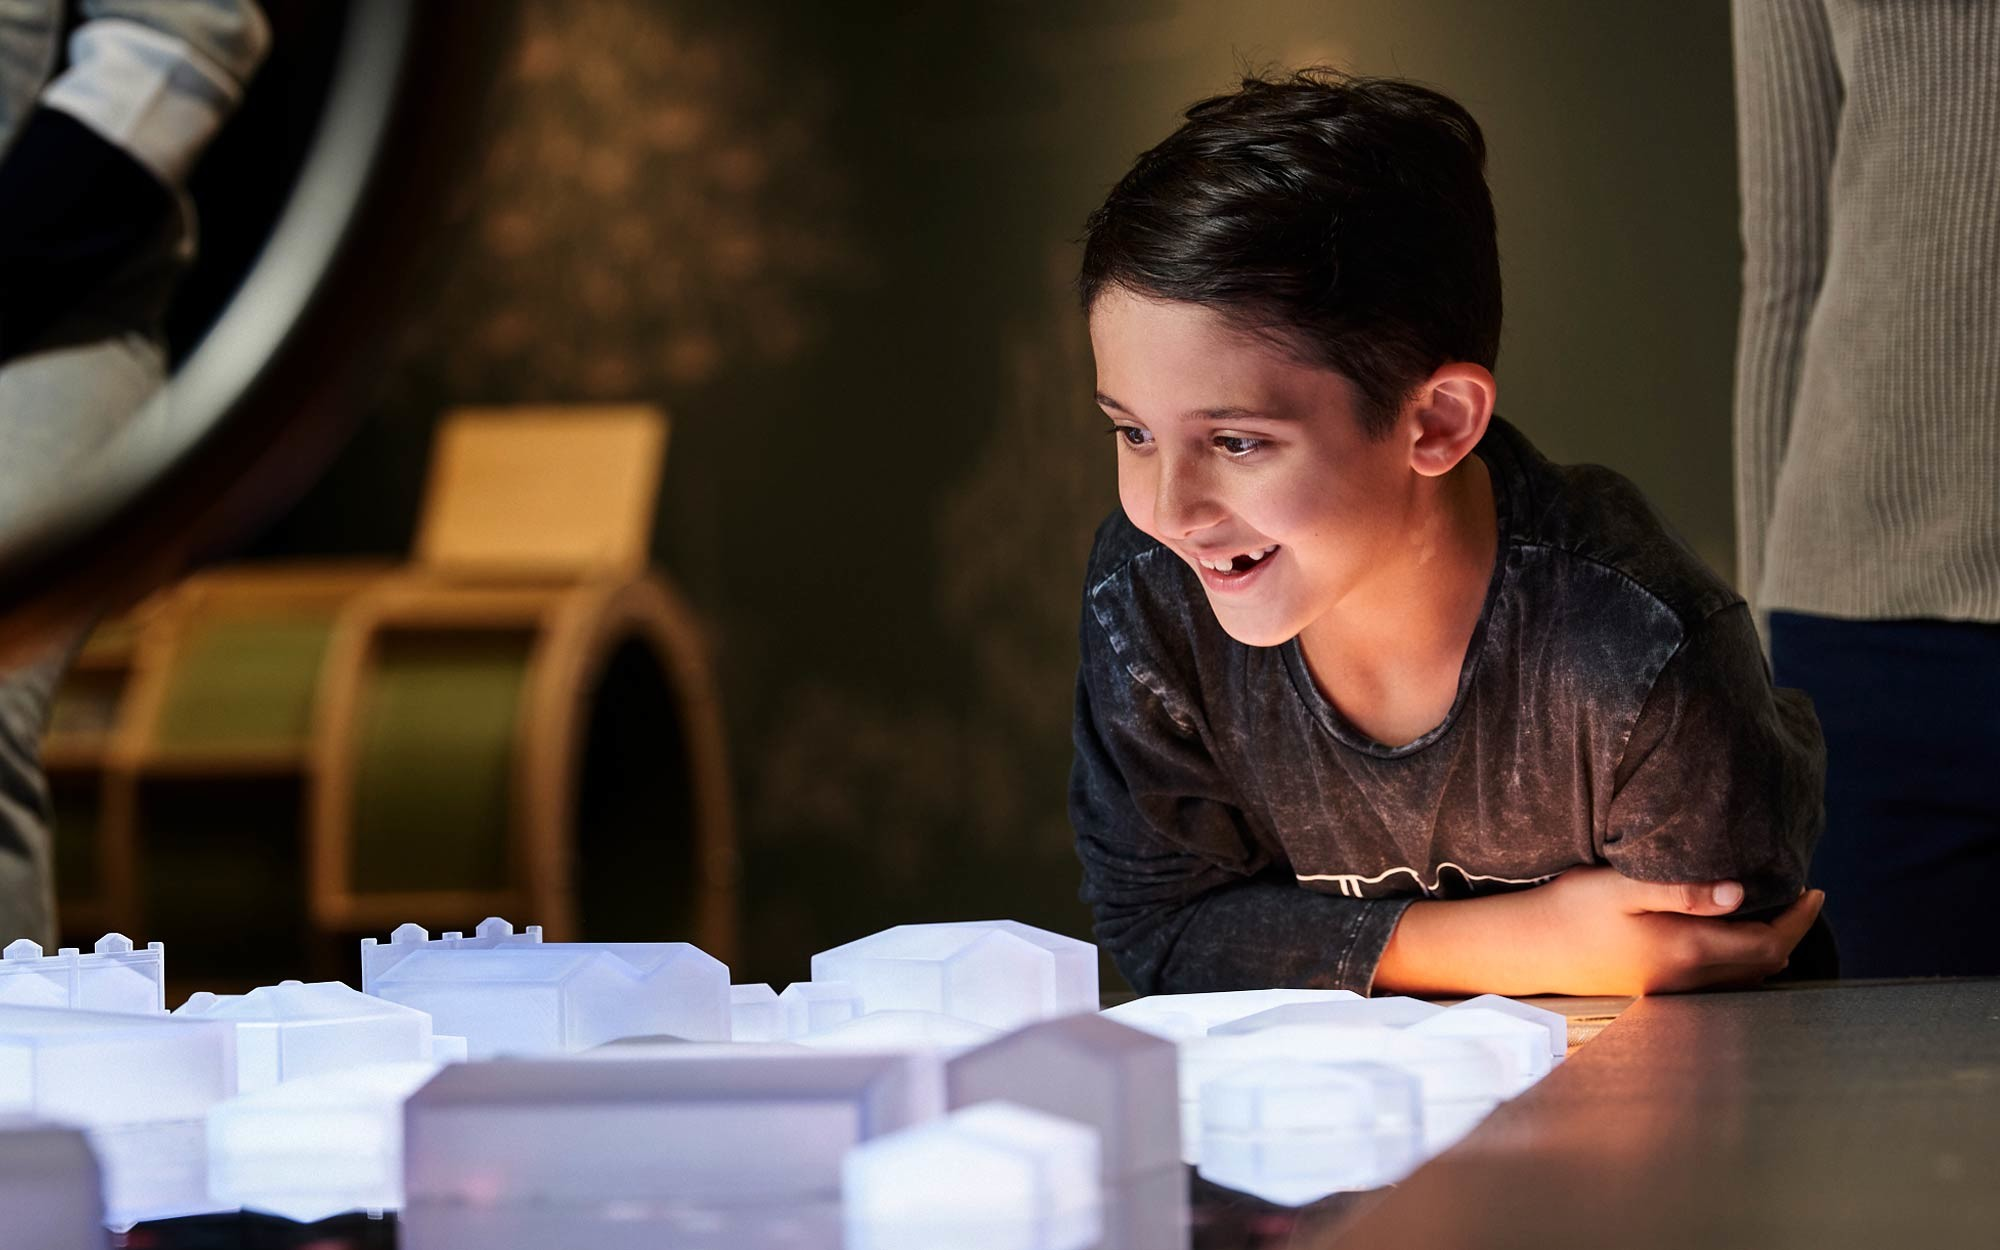 Boy amazed at 3D printed buildings lit up by LED lighting